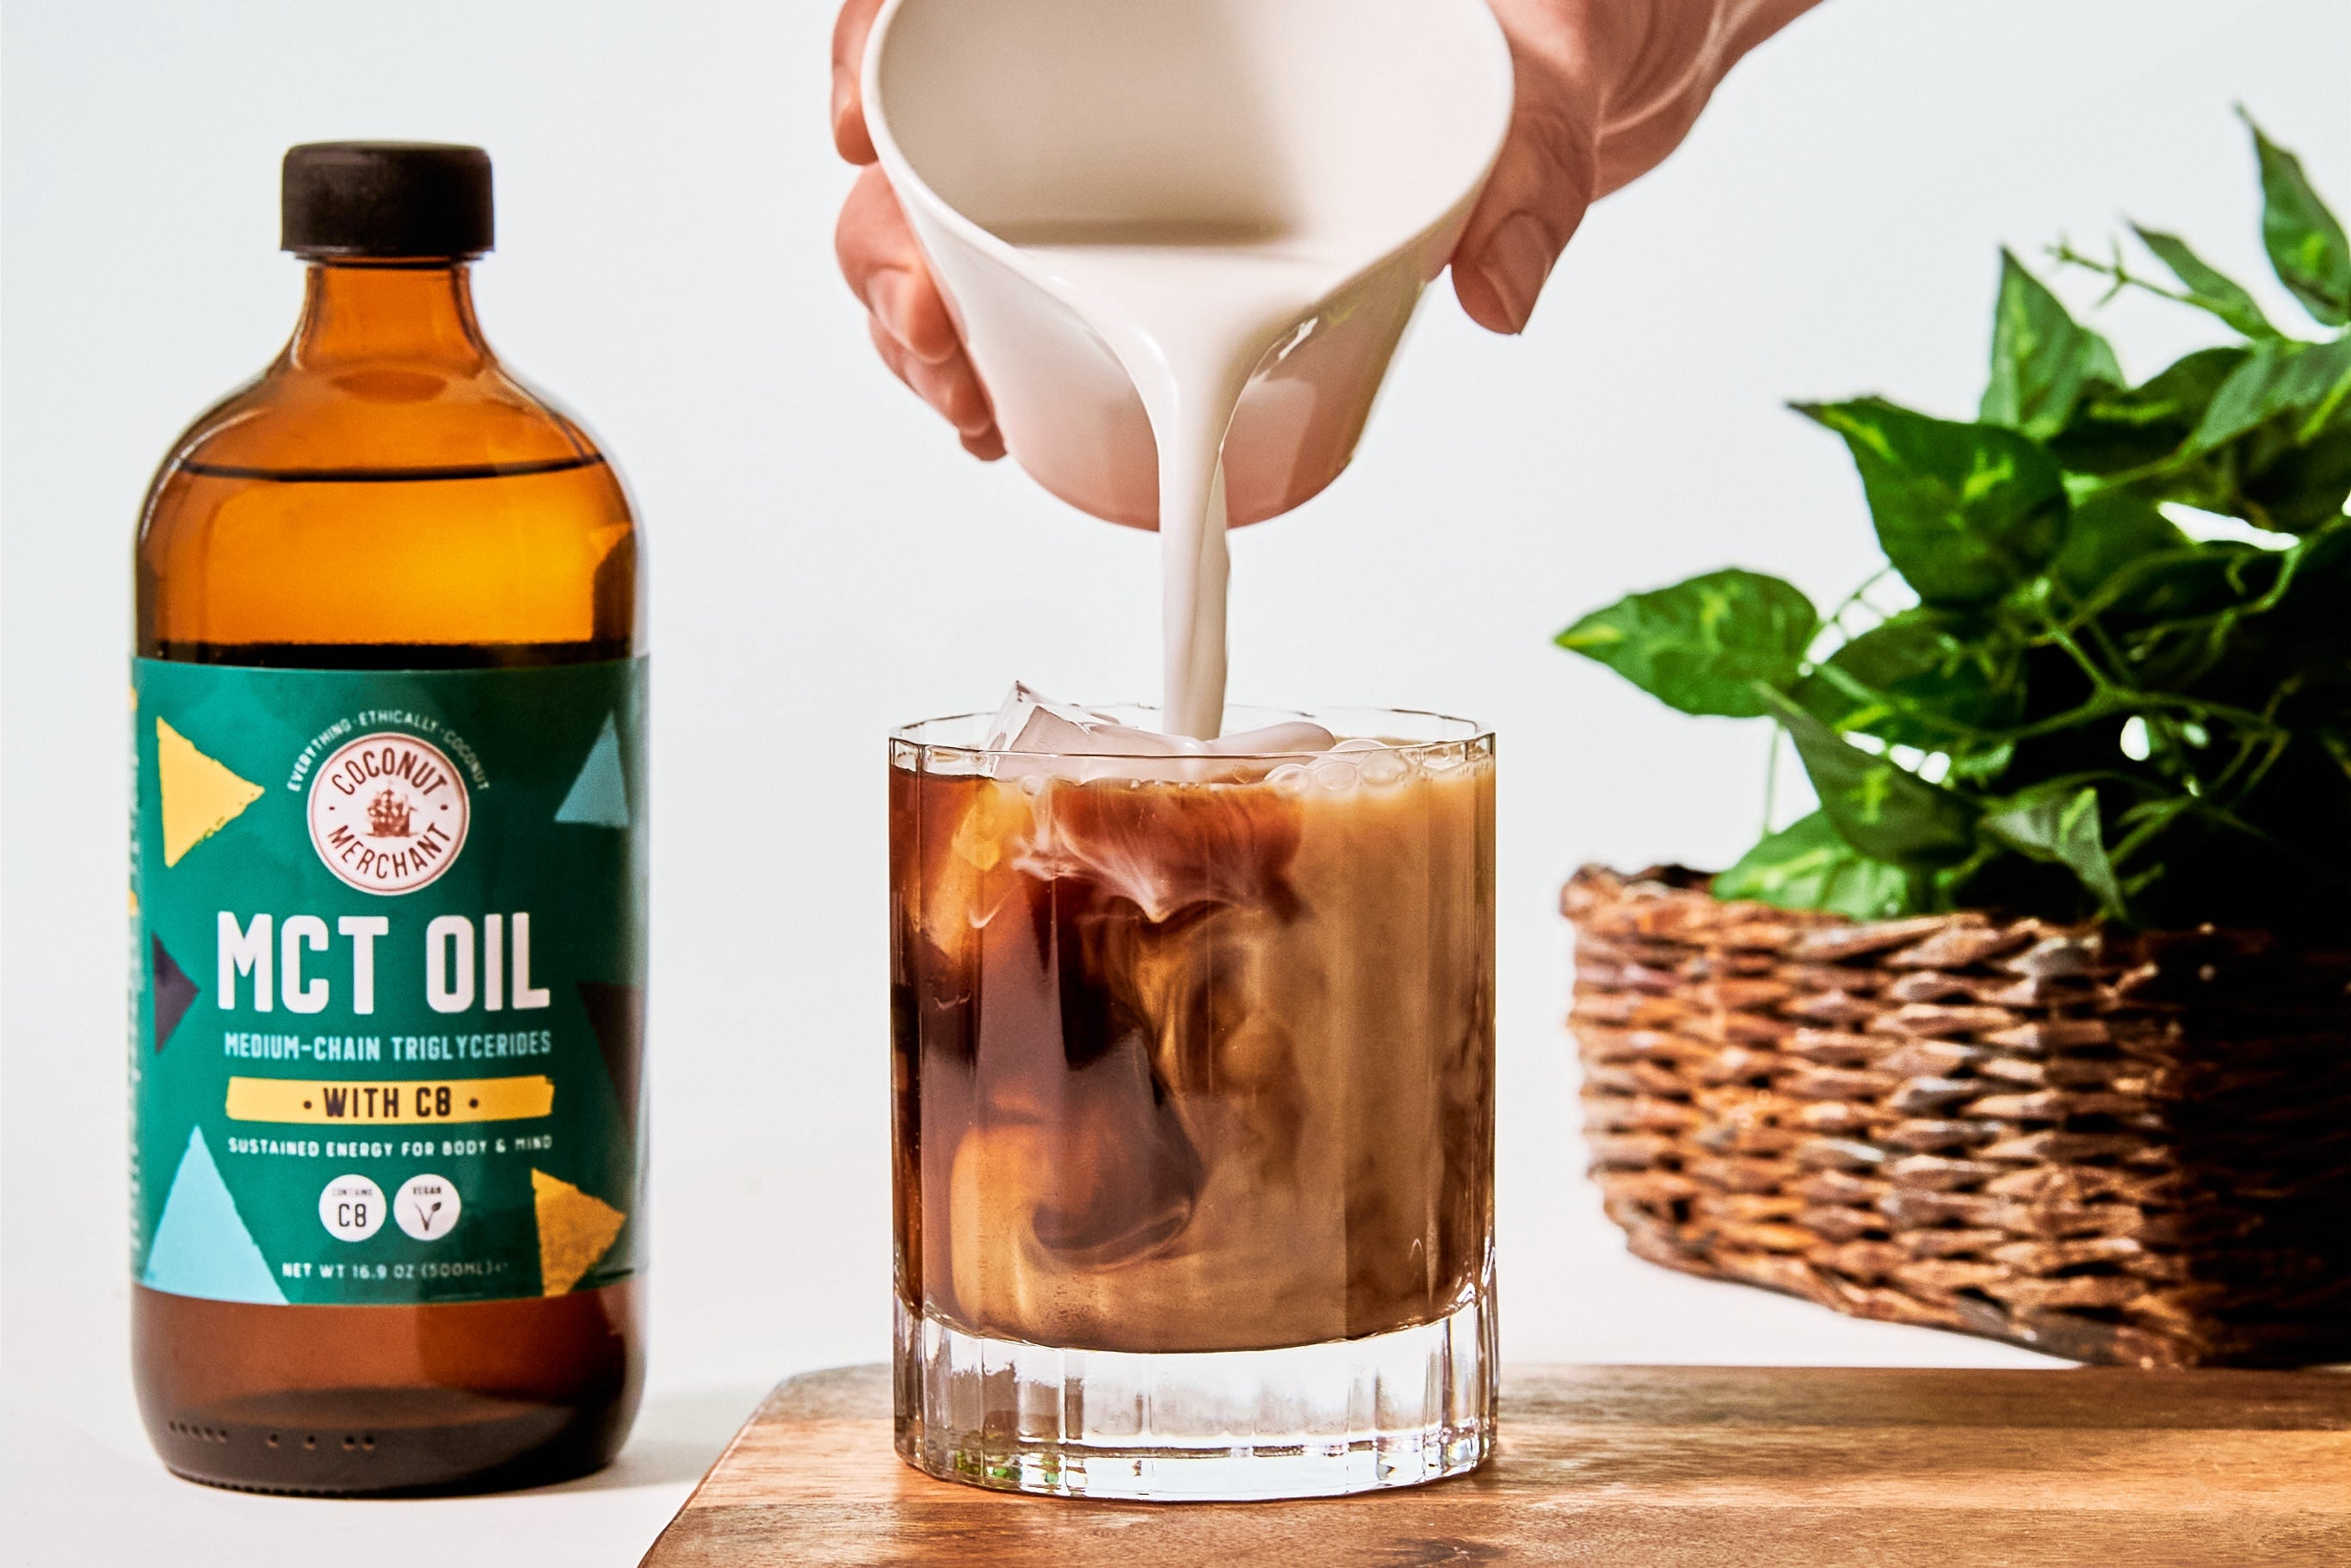 Bottle of MCT oil with someone pouring in coconut milk into a small glass of coffee next to it